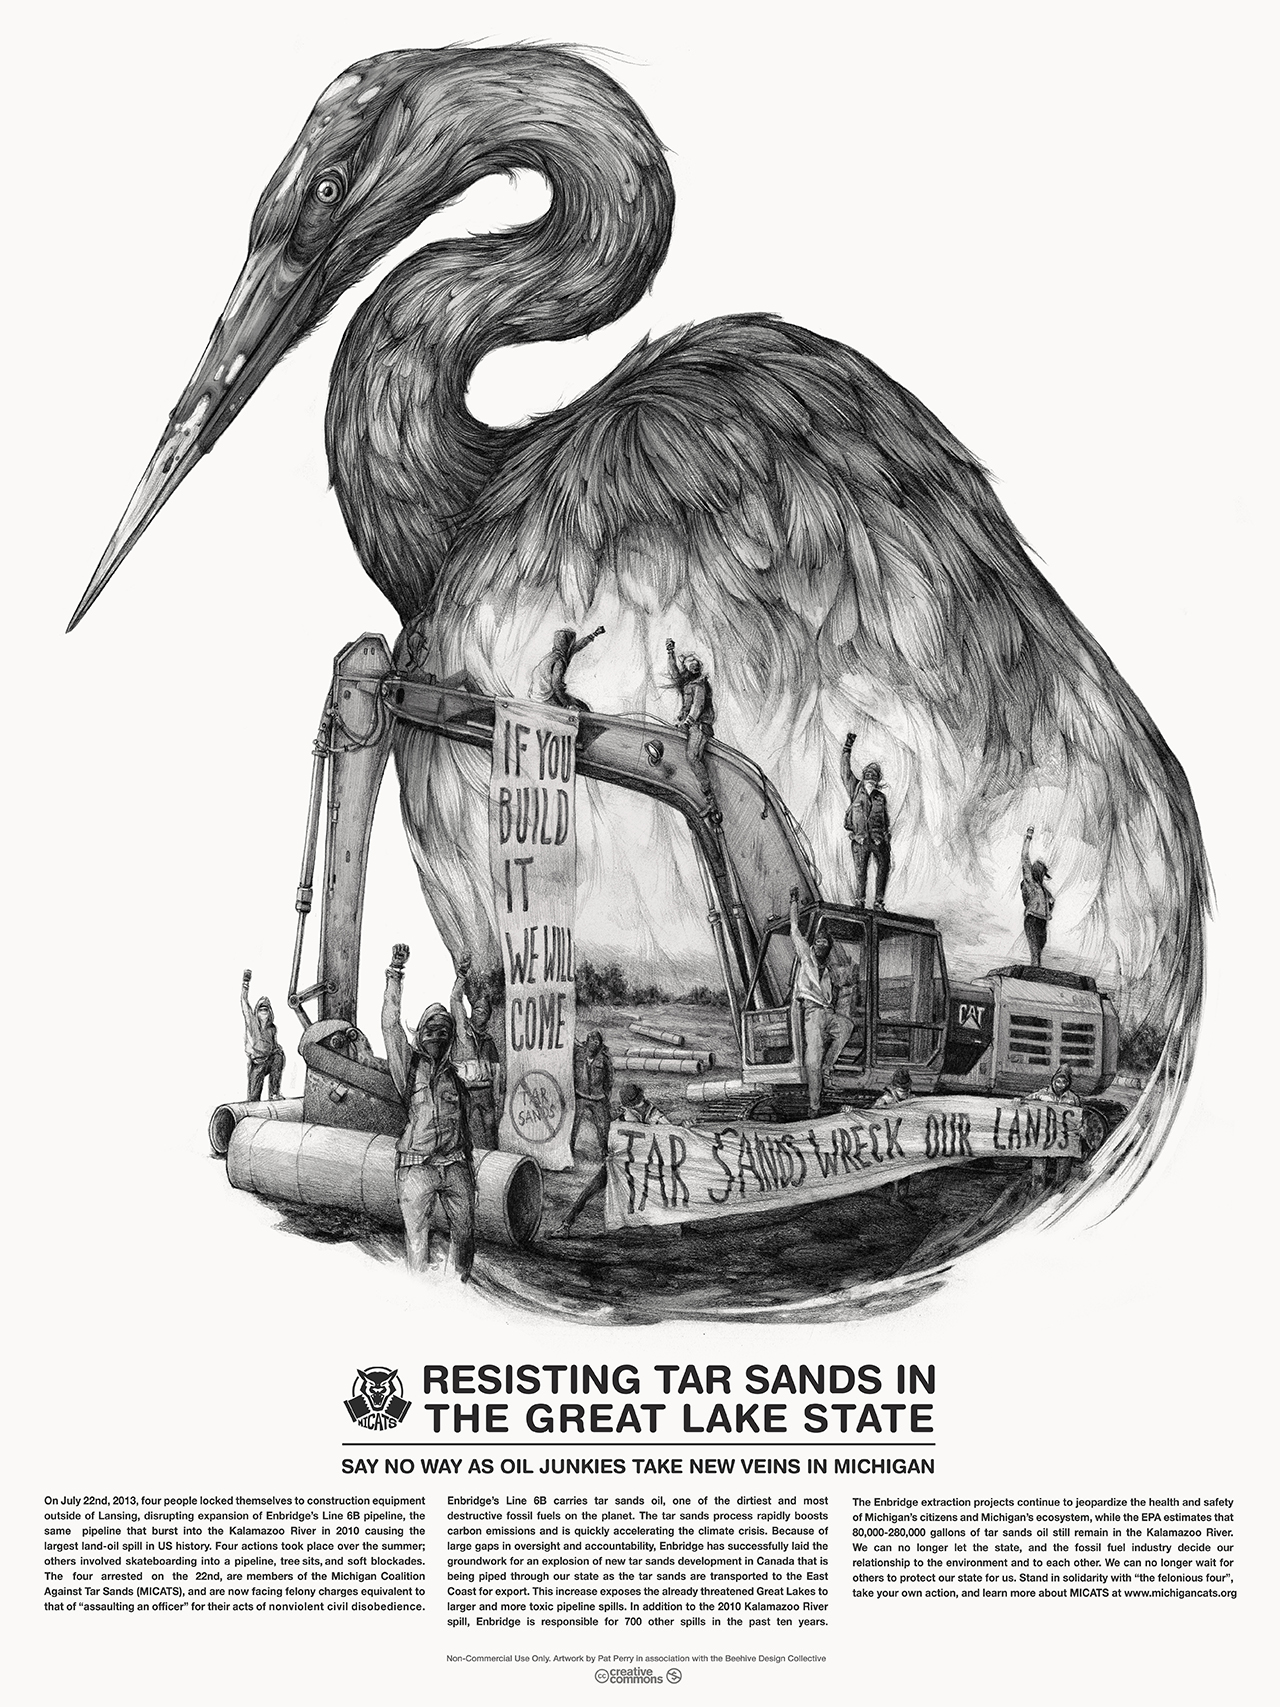 """""""Great Lakes Tar Sands Resistance,"""" Pat Perry, 2013 (Reproduced with permission from publisher)"""